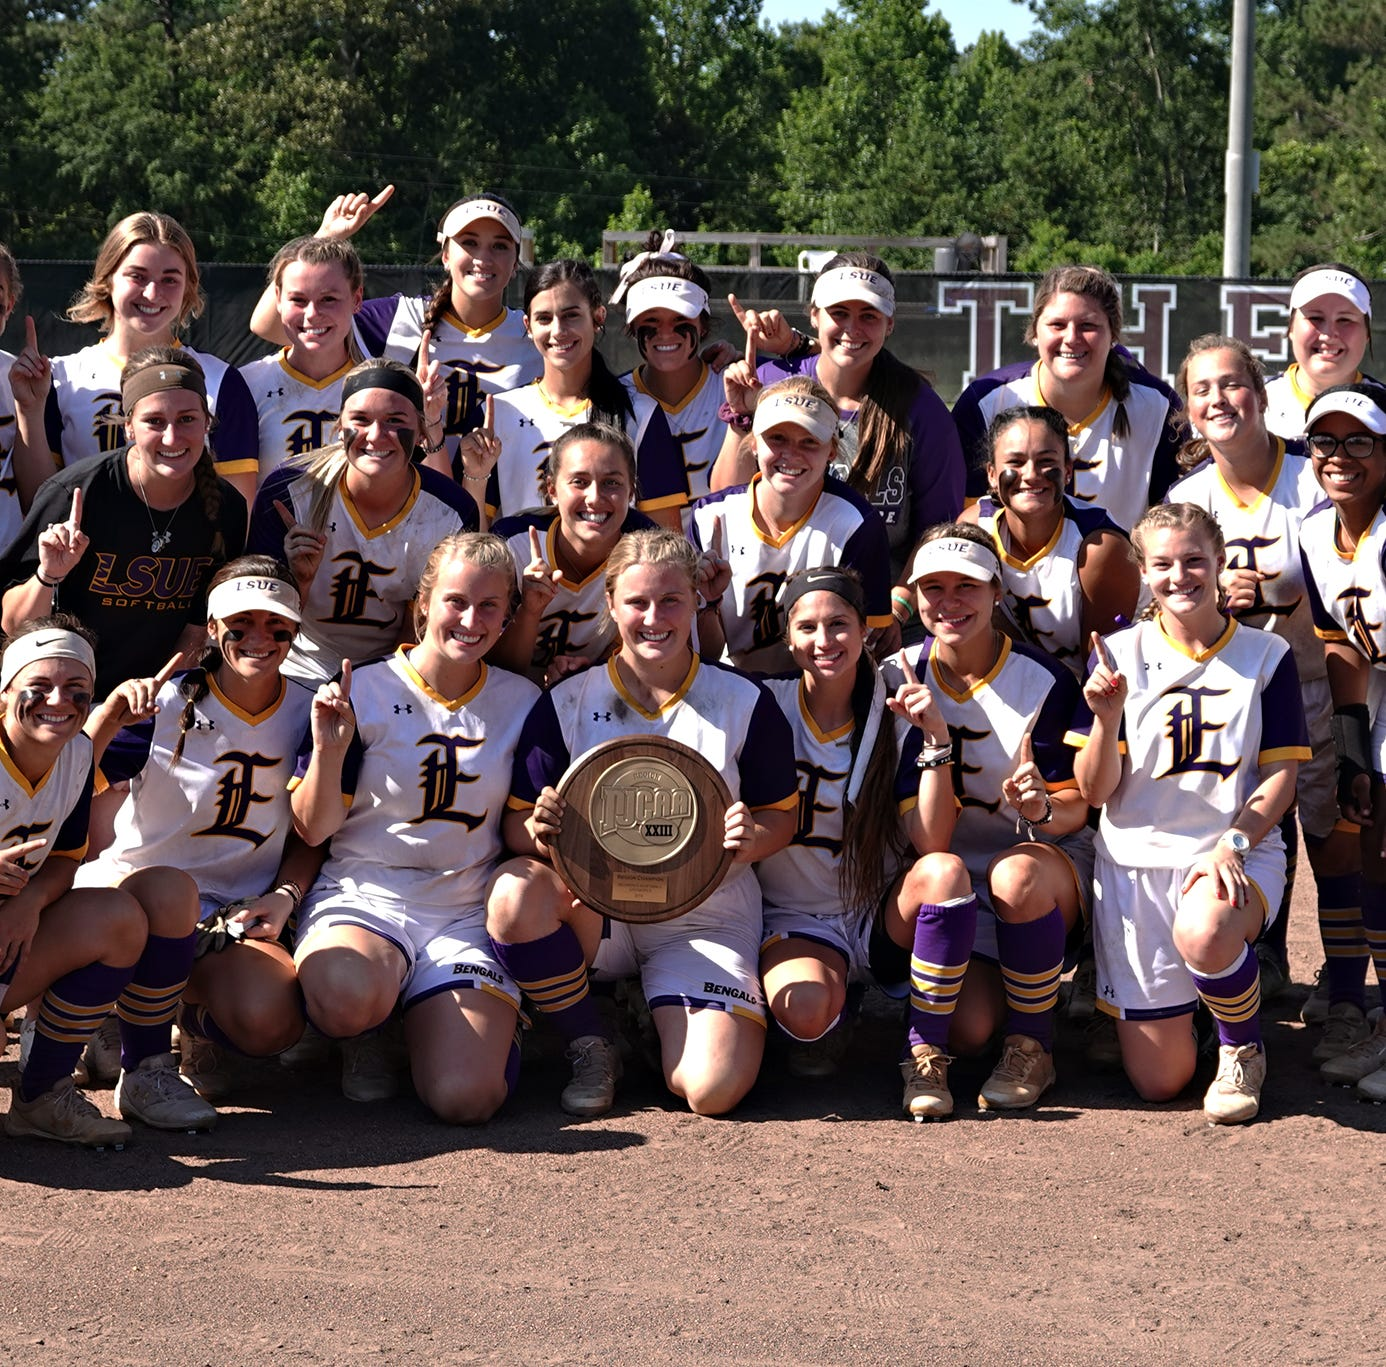 Top-ranked LSUE softball sweeps through Region 23 Tournament